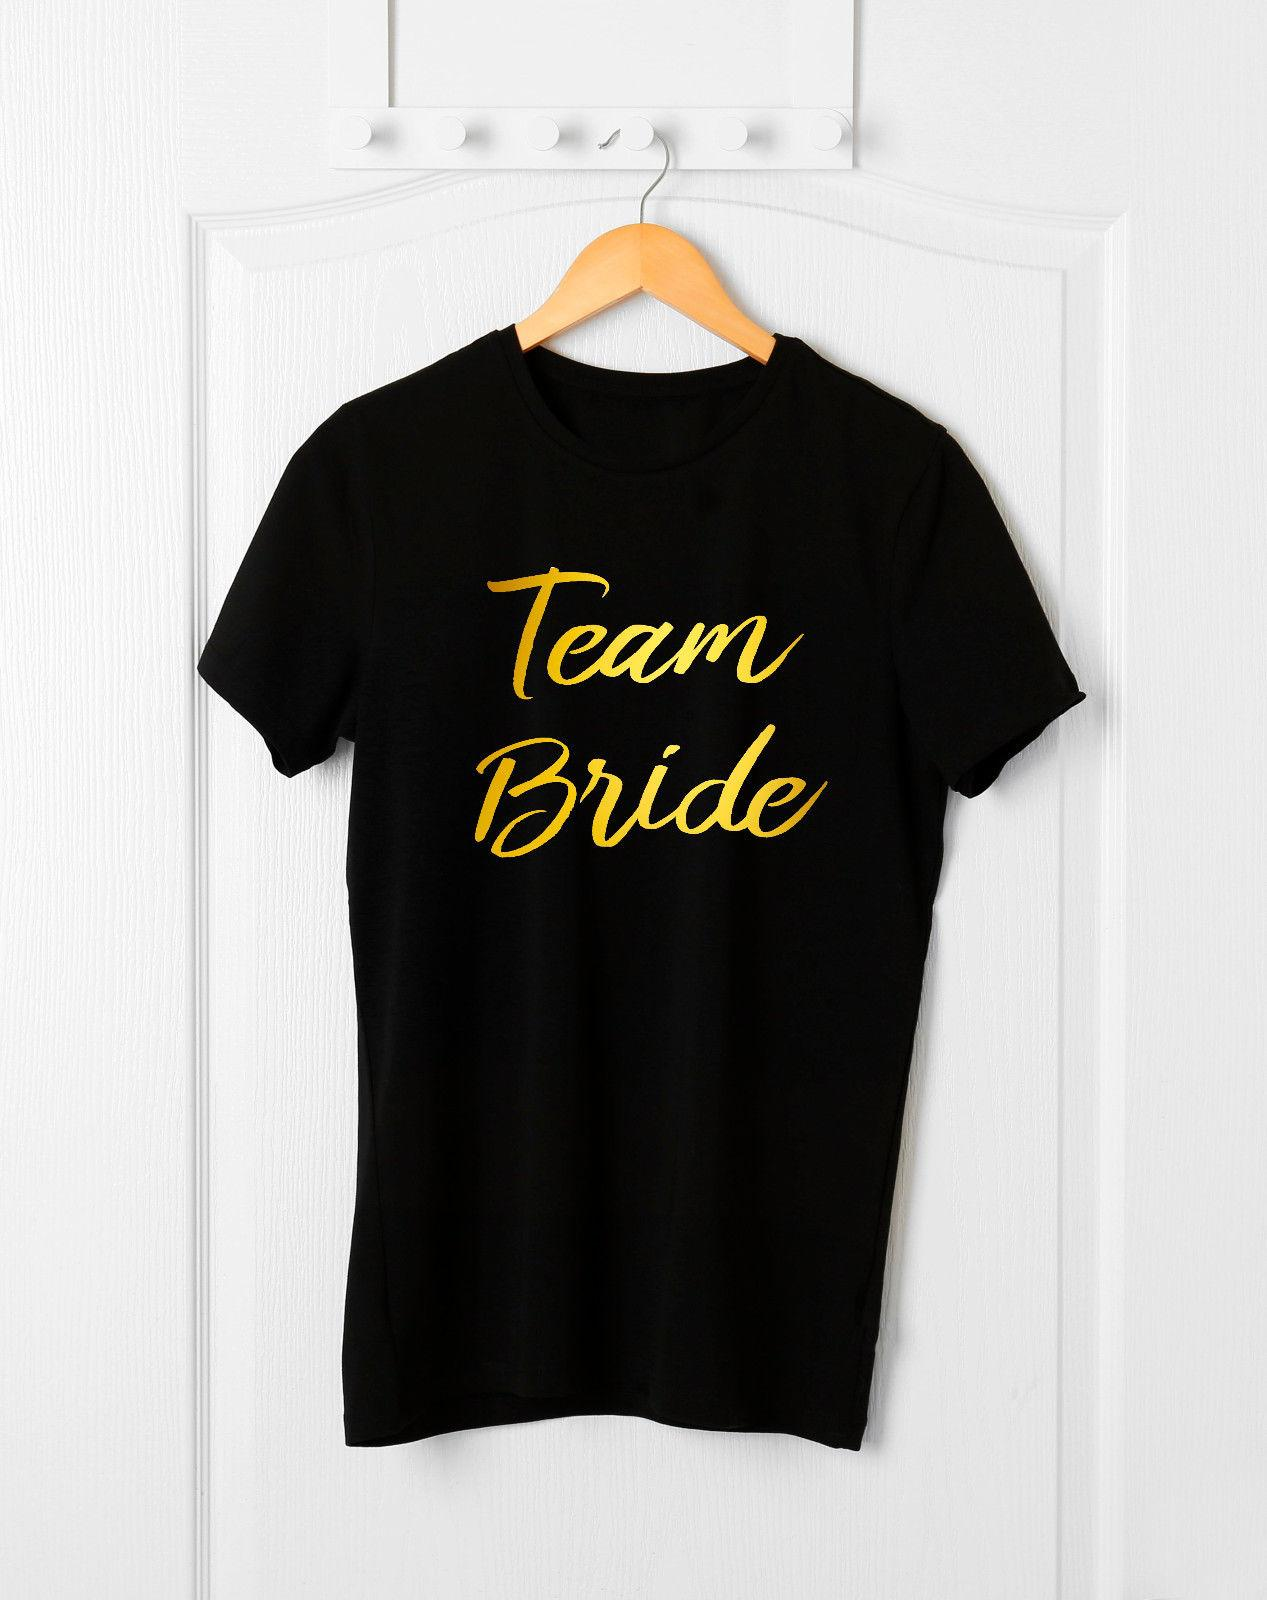 7abd710c Team Bride T-Shirt,Hen Party T-Shirt,Engagement Gifts,Wedding  Party,Bridesmaid O-neck Fashion Printed Round Neck man's